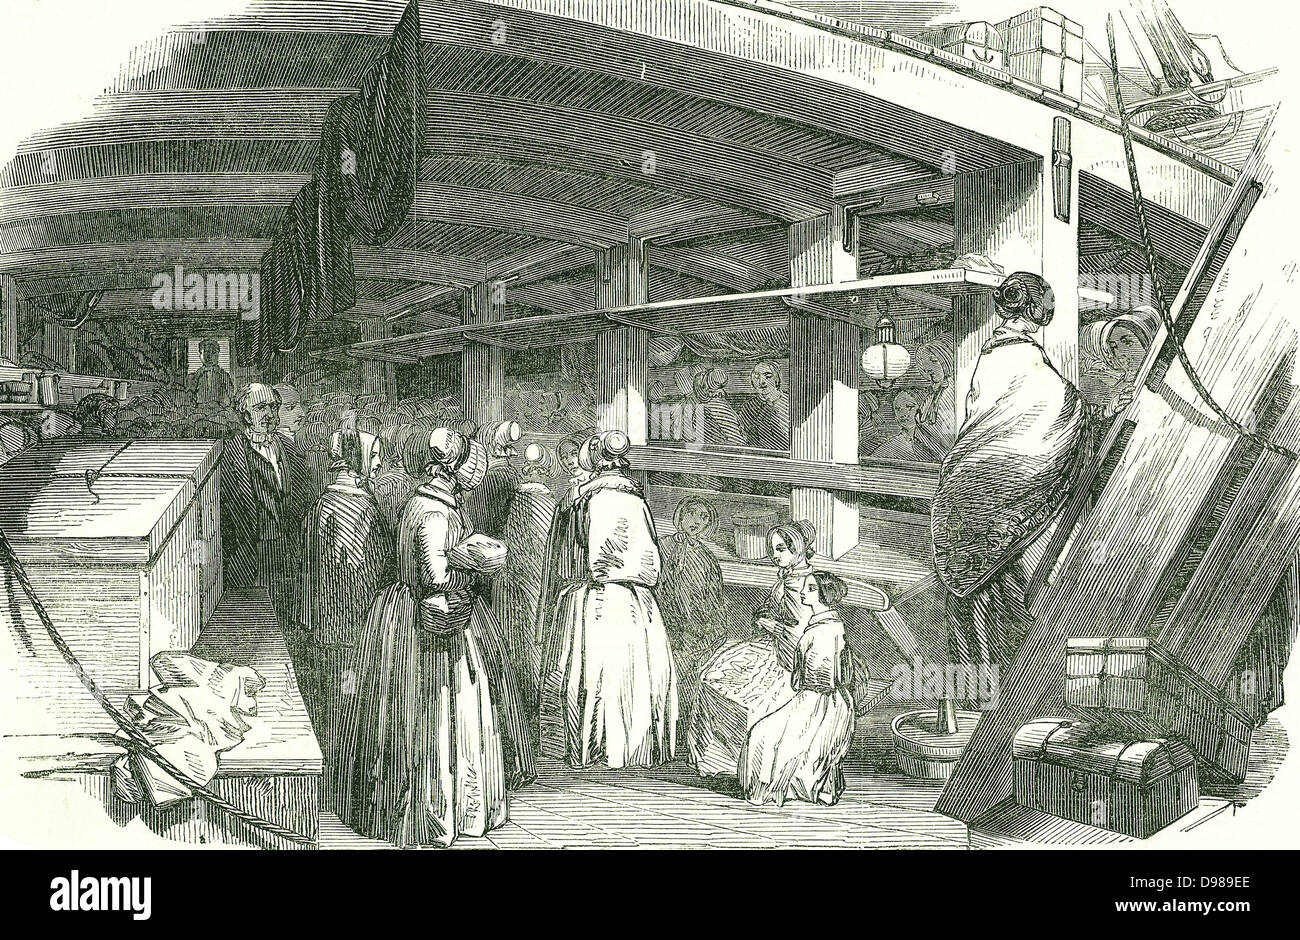 Scene between decks on an emigrant ship carrying poor needlewomen to Australia. At this date skilled workers were - Stock Image